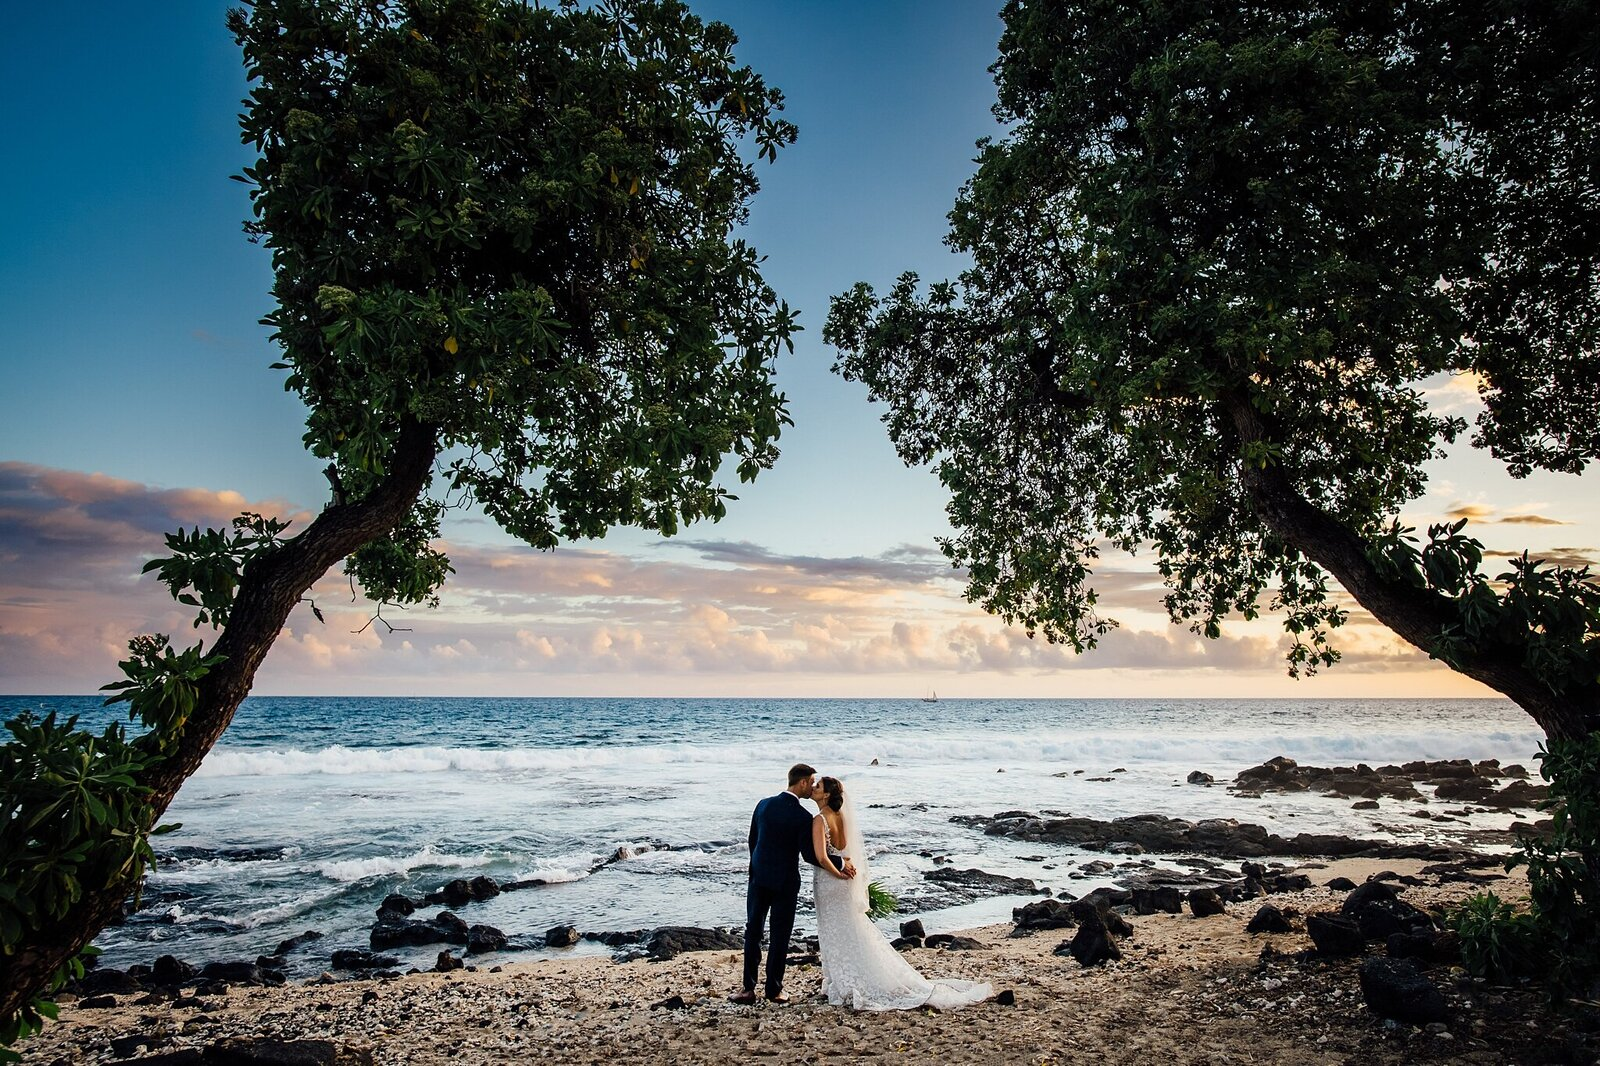 couple kissing under trees on beach